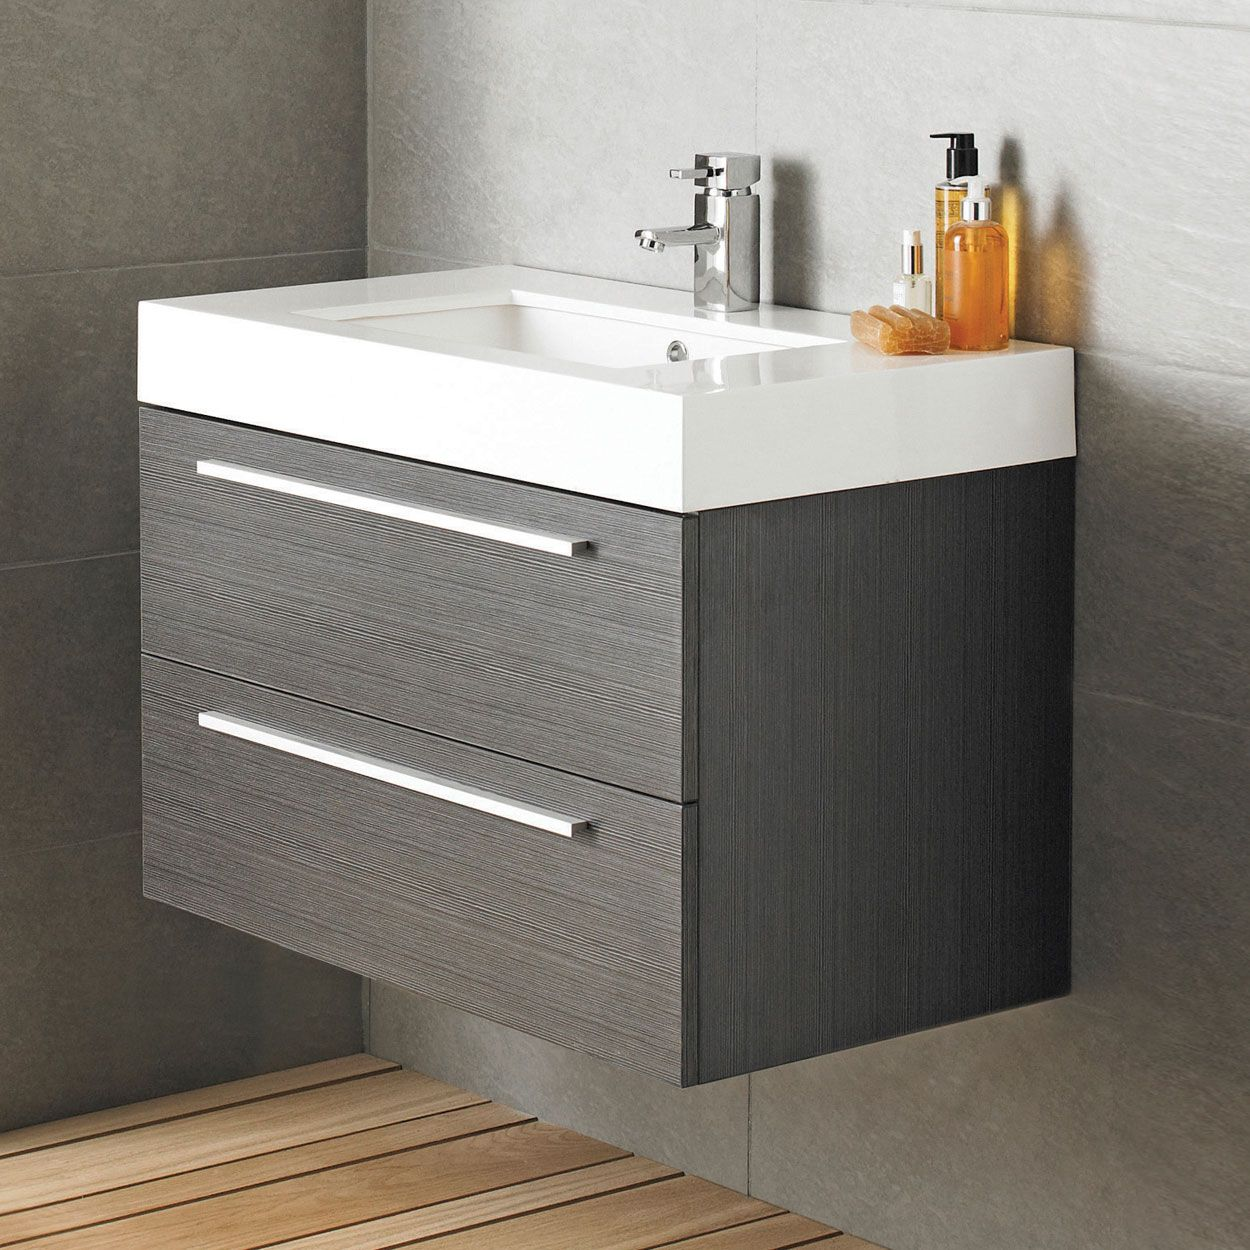 Minimalist And Sophisticated Gray Bathroom Vanity Using Stainless